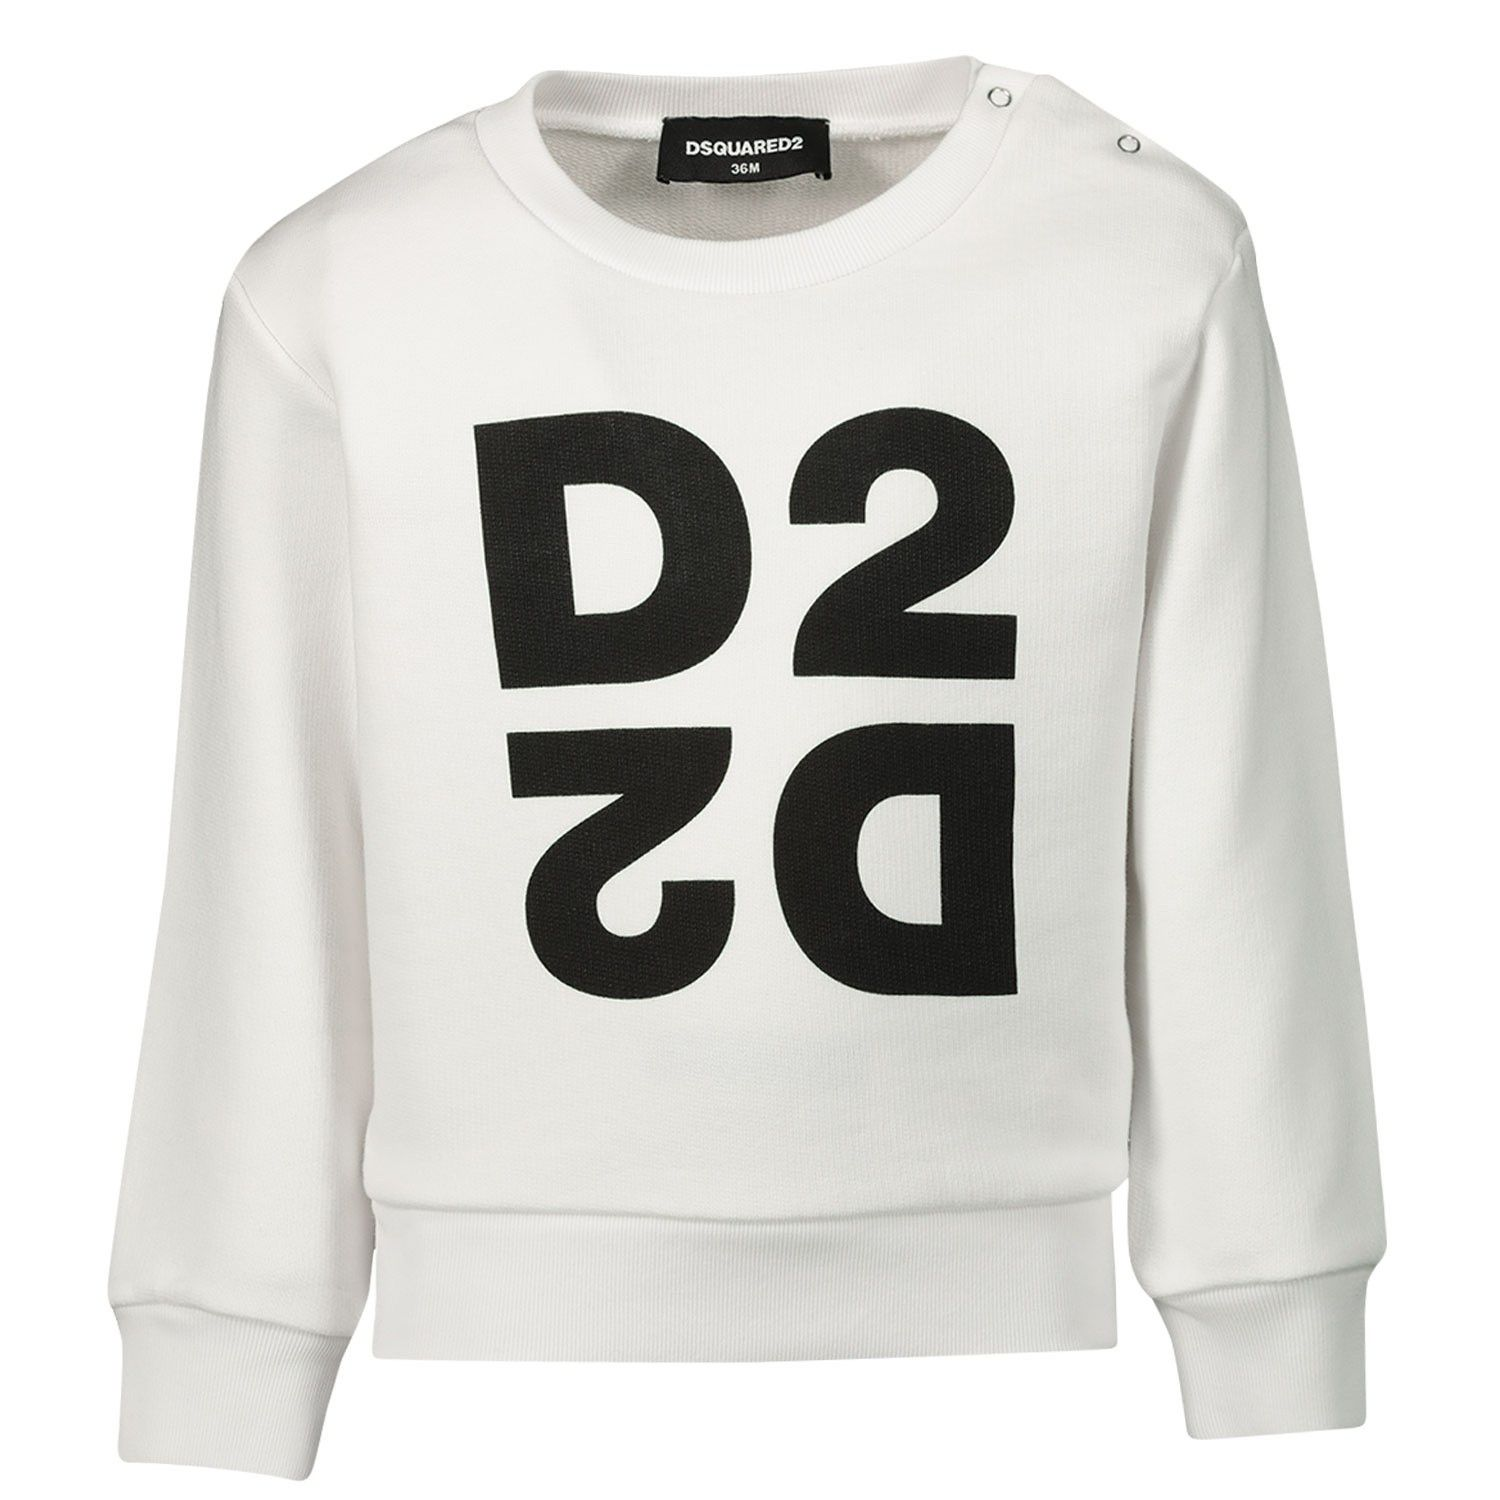 Picture of Dsquared2 DQ042S baby sweater white